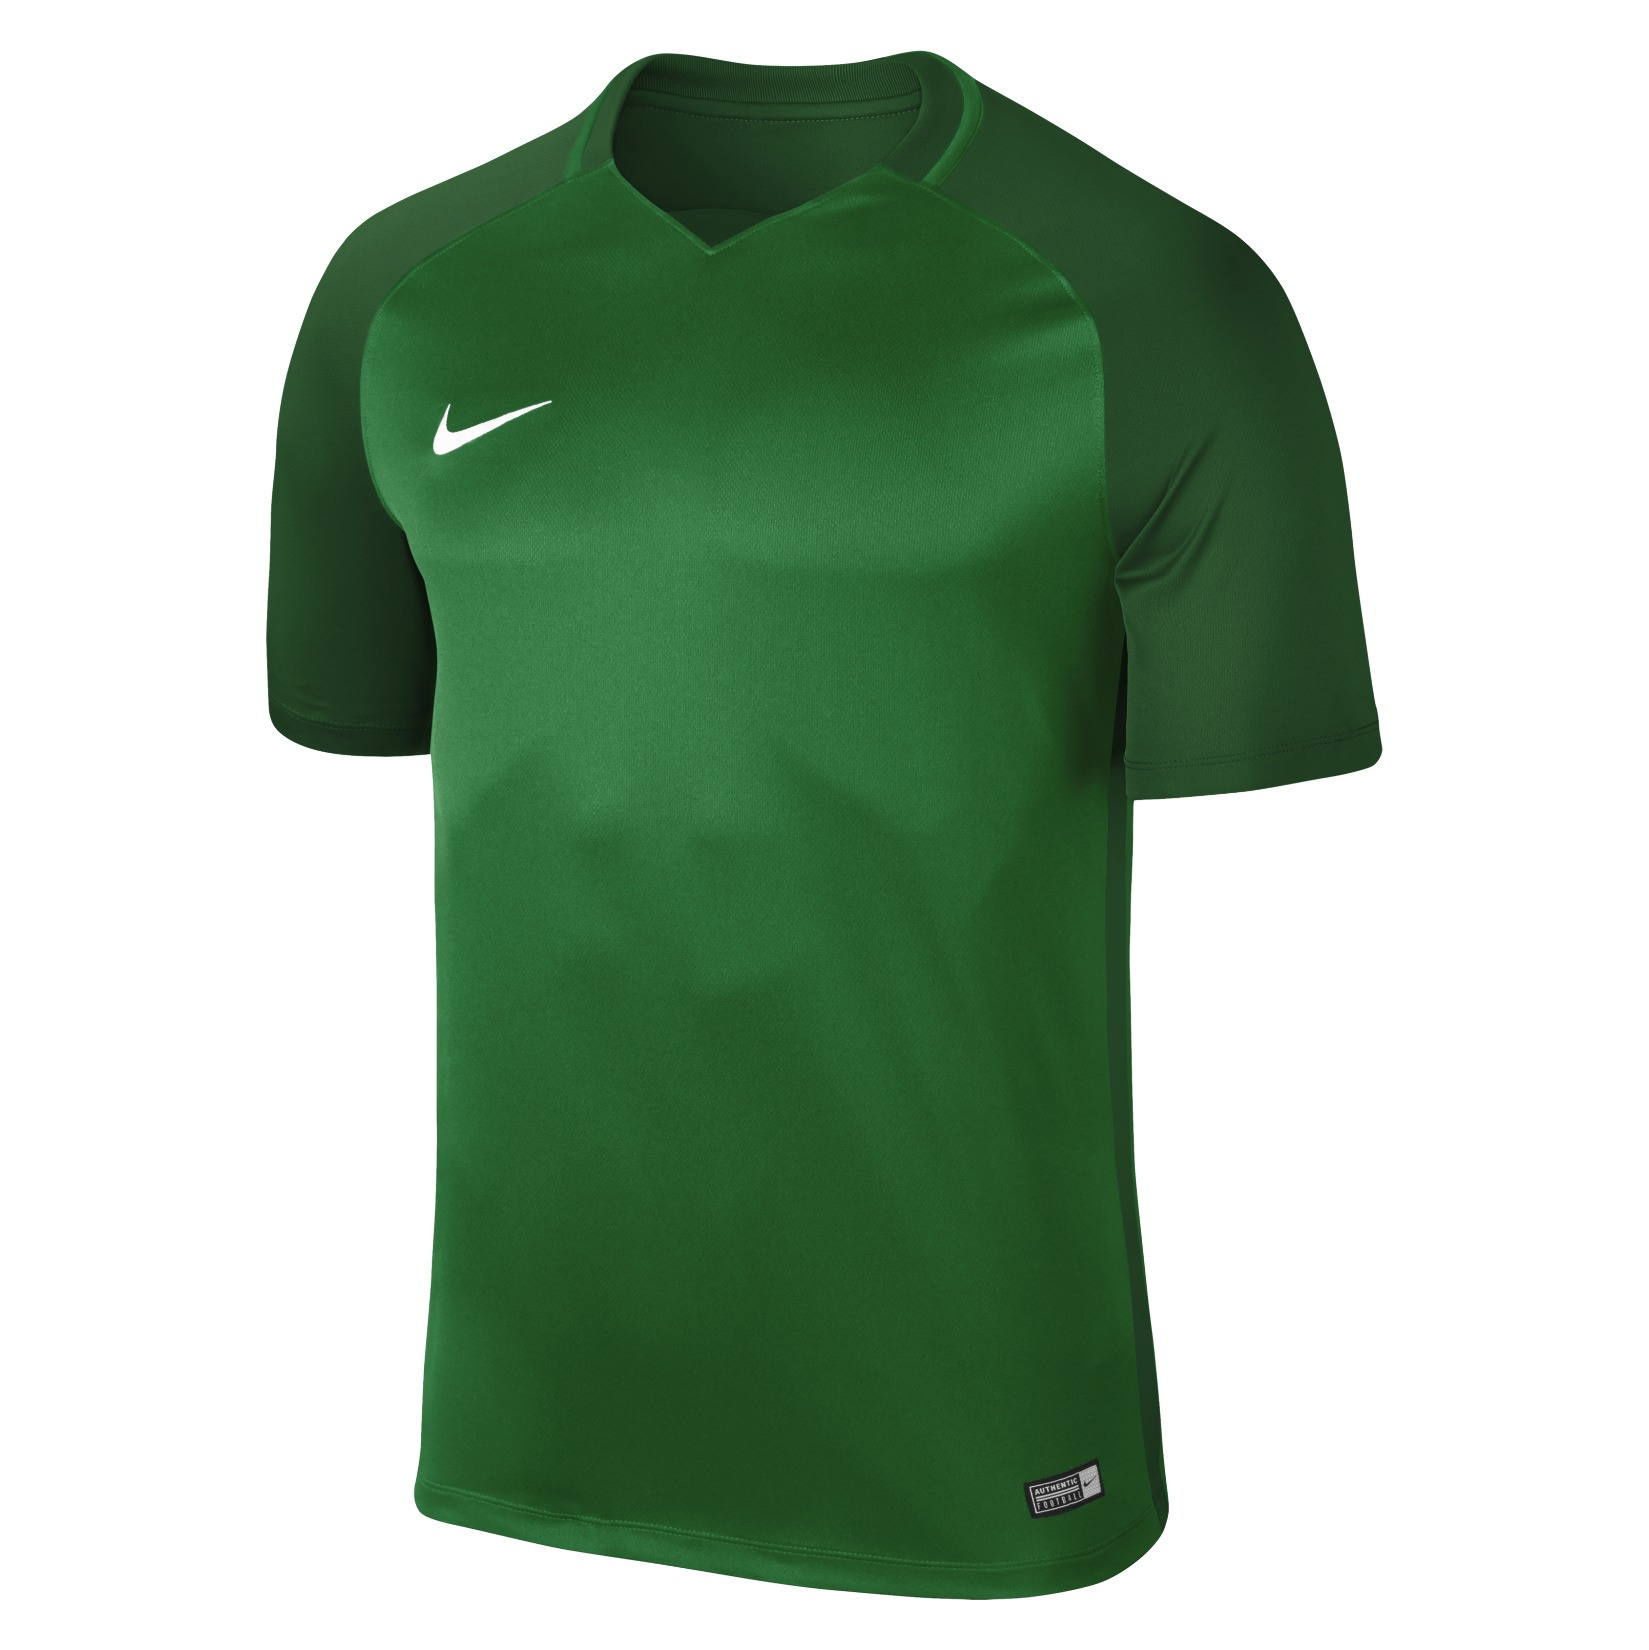 Nike Trophy III Short Sleeve Shirt Pine Green-Gorge Green-Gorge Green-White